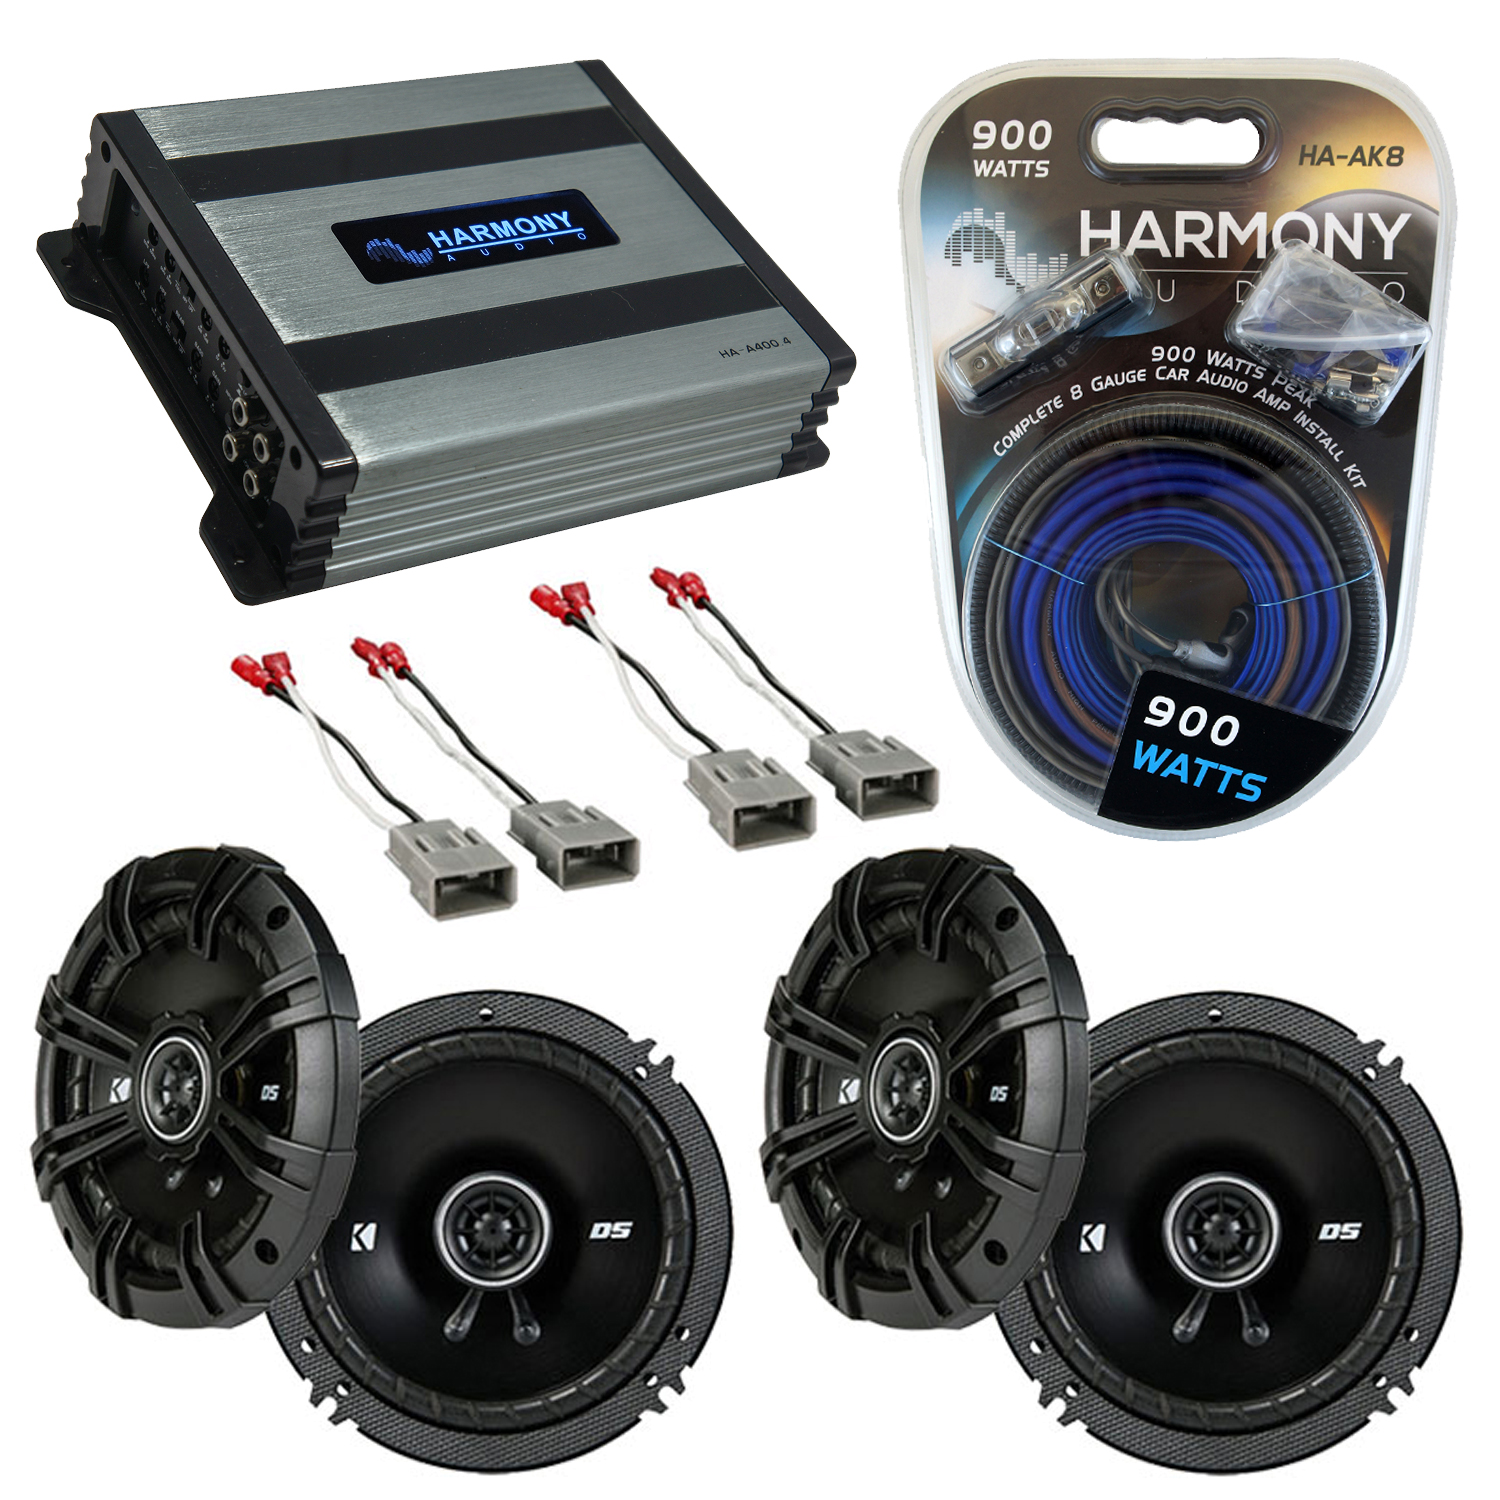 Kicker Bundle Compatible With 2001-06 Acura MDX (2) DSC65 New Factory Speaker Replacement Upgrade Package With HA-A400.4 Amplifier